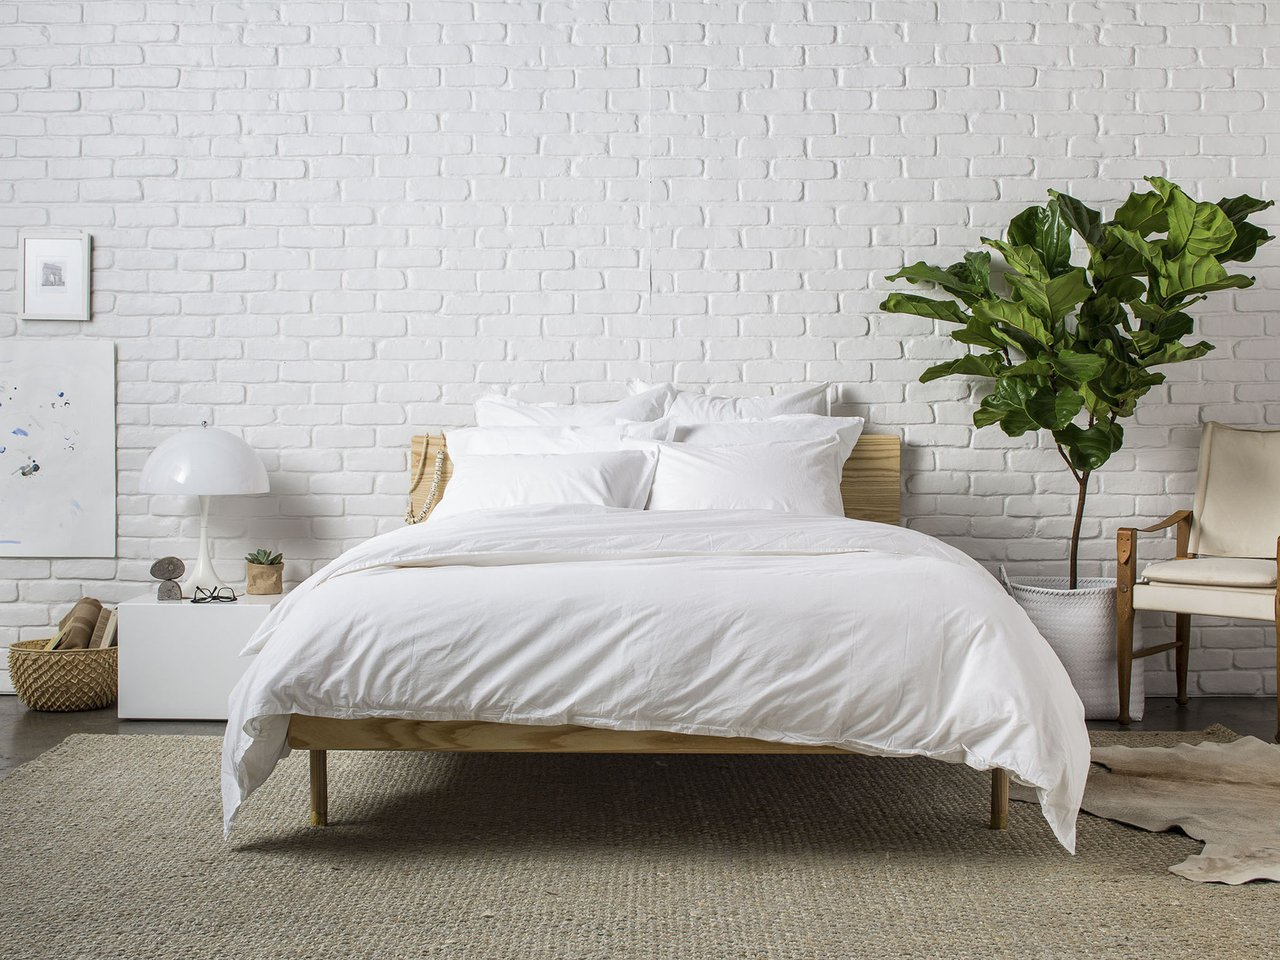 bed with white bedding